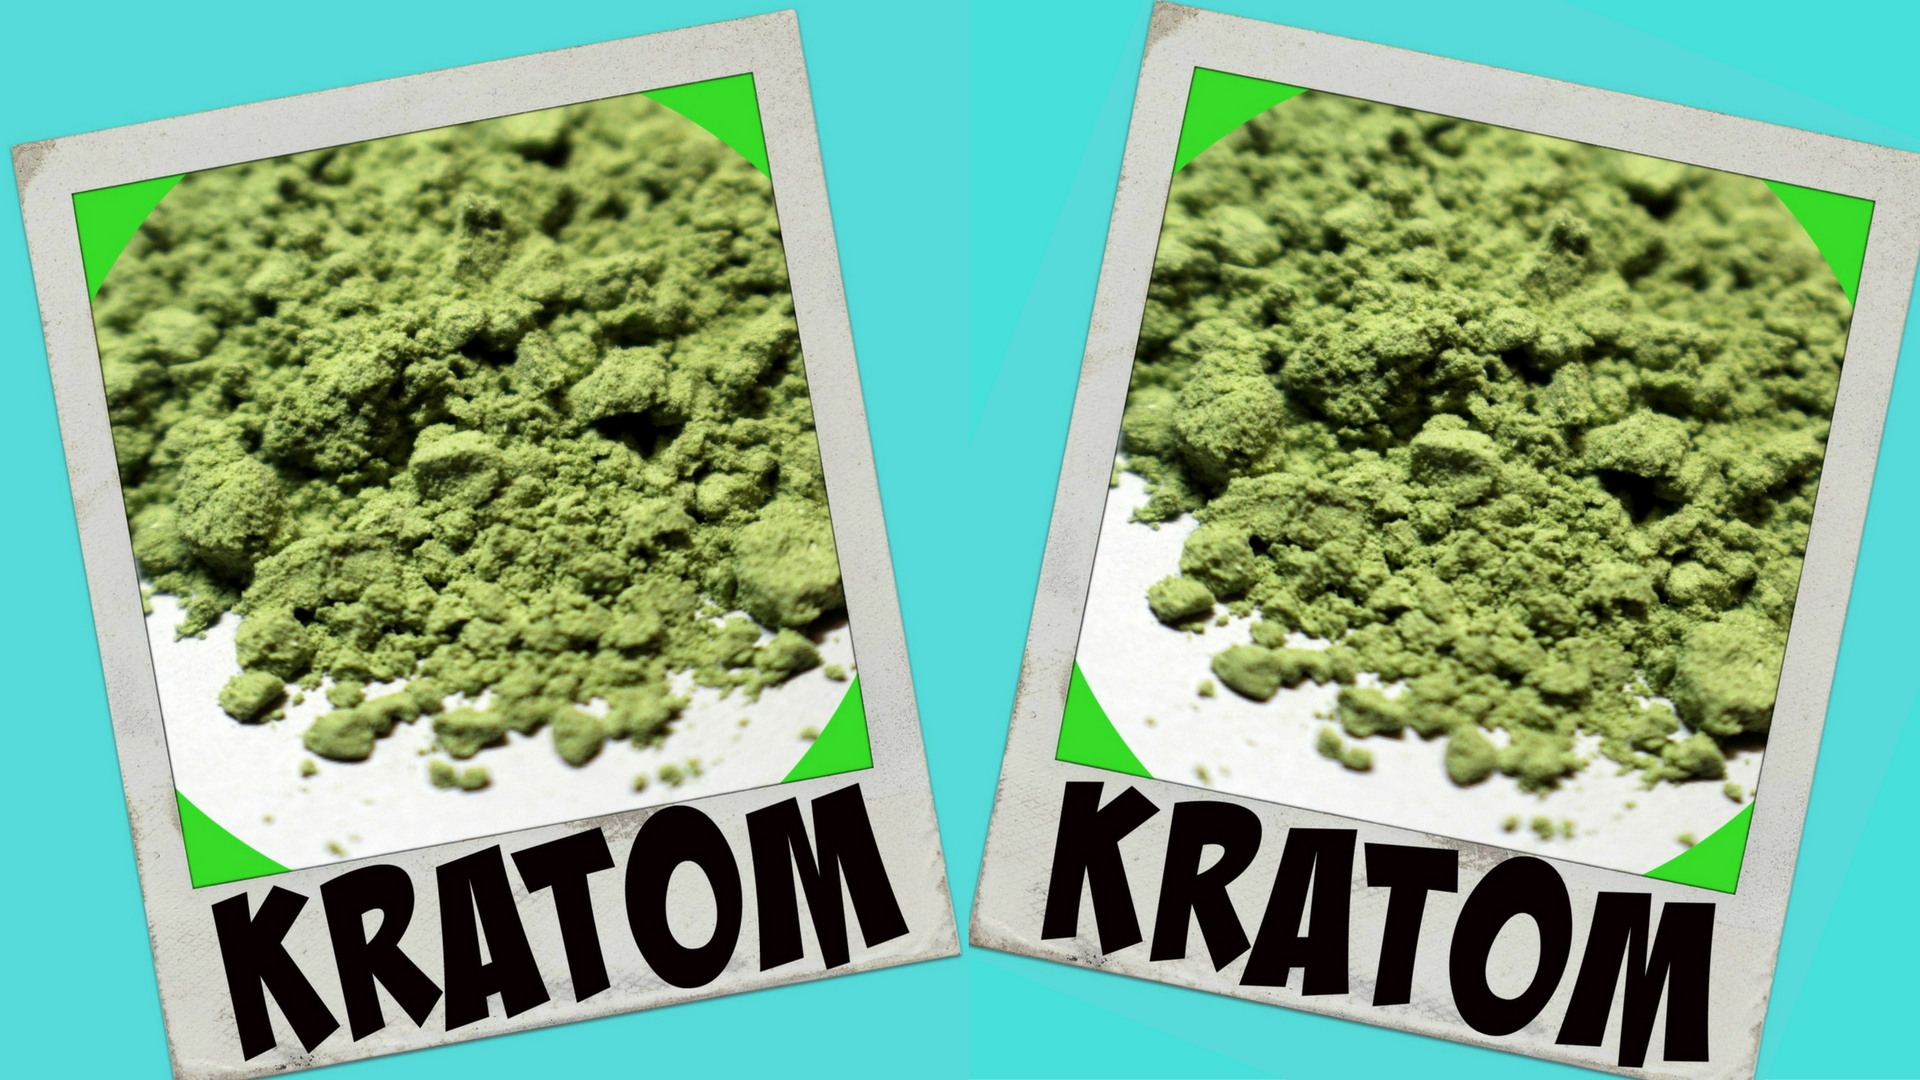 Kratom Guide For Beginners Overview Dosages Benefits Side Effects And Different Strains